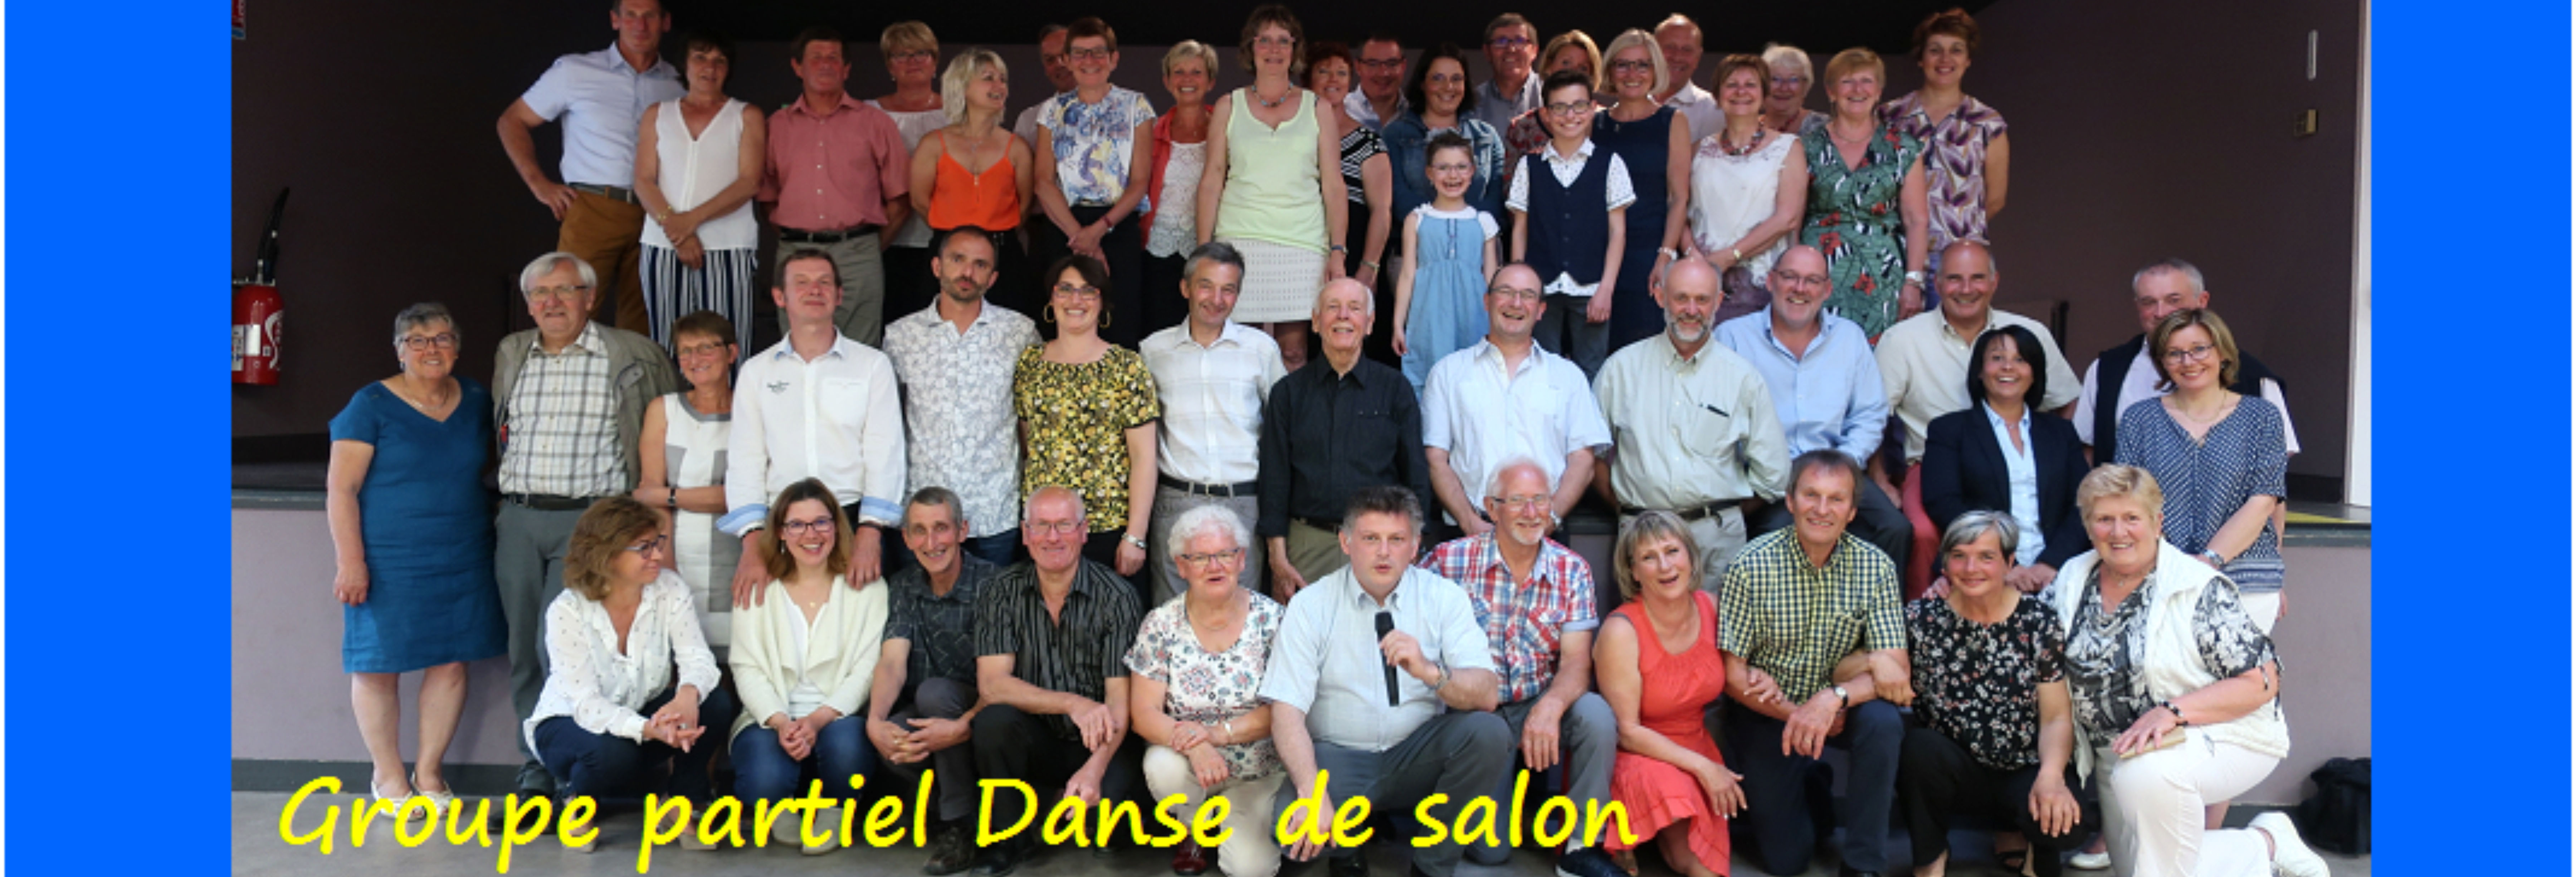 Groupe danse de salon